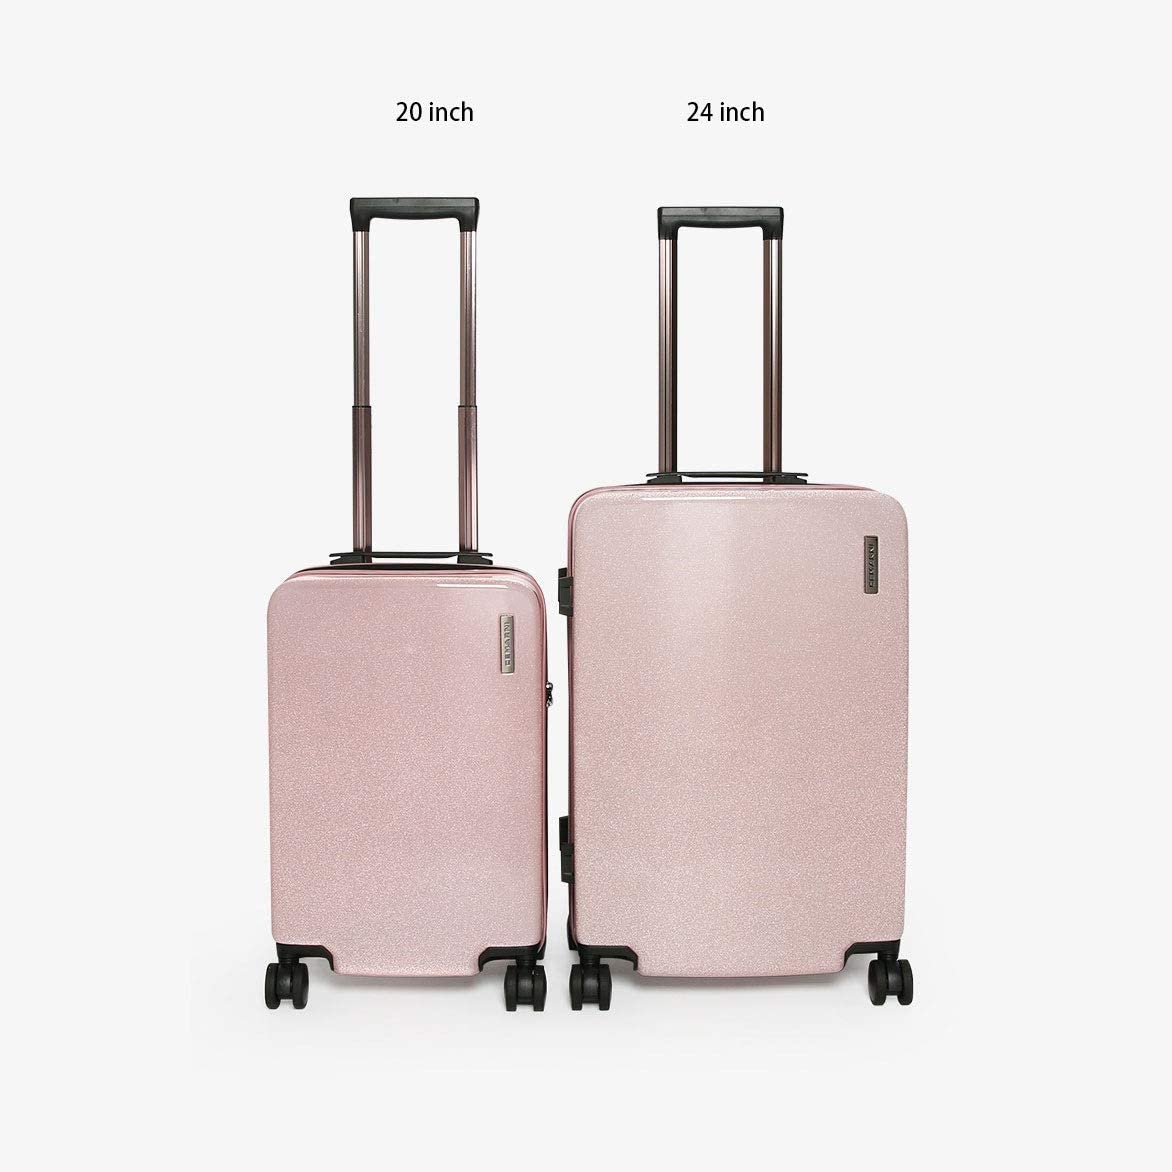 Black 24 inches Color : Blue, Size : 20 Minmin-lgx Luggage Trolley Trolley Universal Wheel Suitcase Aluminum Frame Retro Right Angle Lock Box Large Capacity Boarding